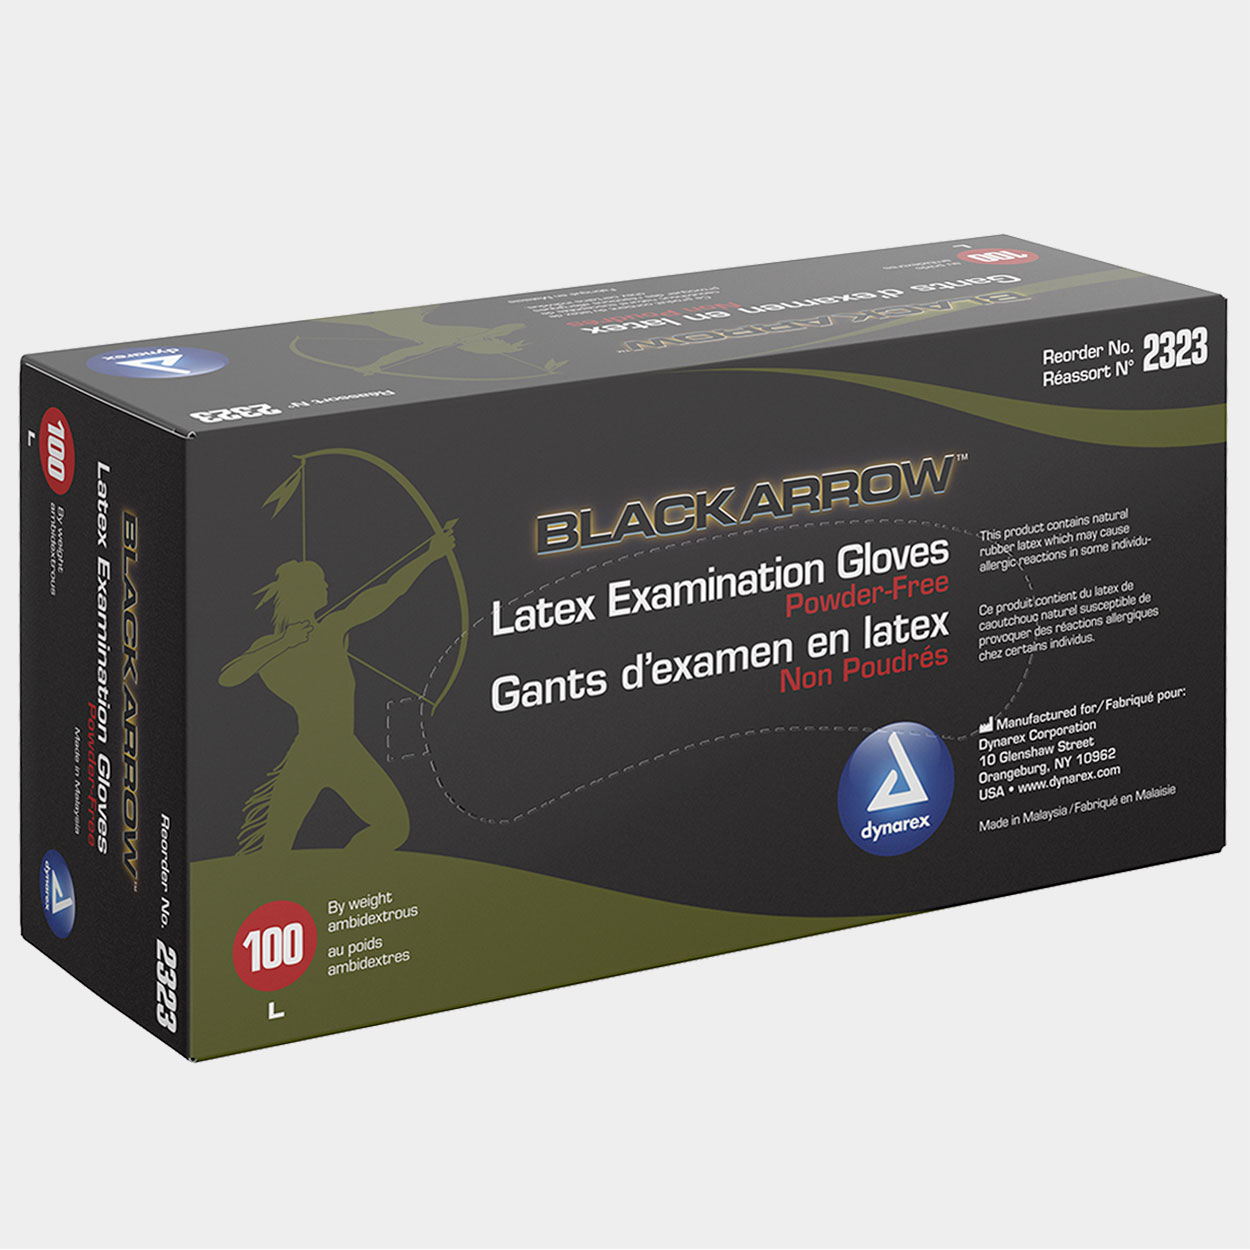 Black Arrow Latex examination gloves - Medical supply - Killer Silver